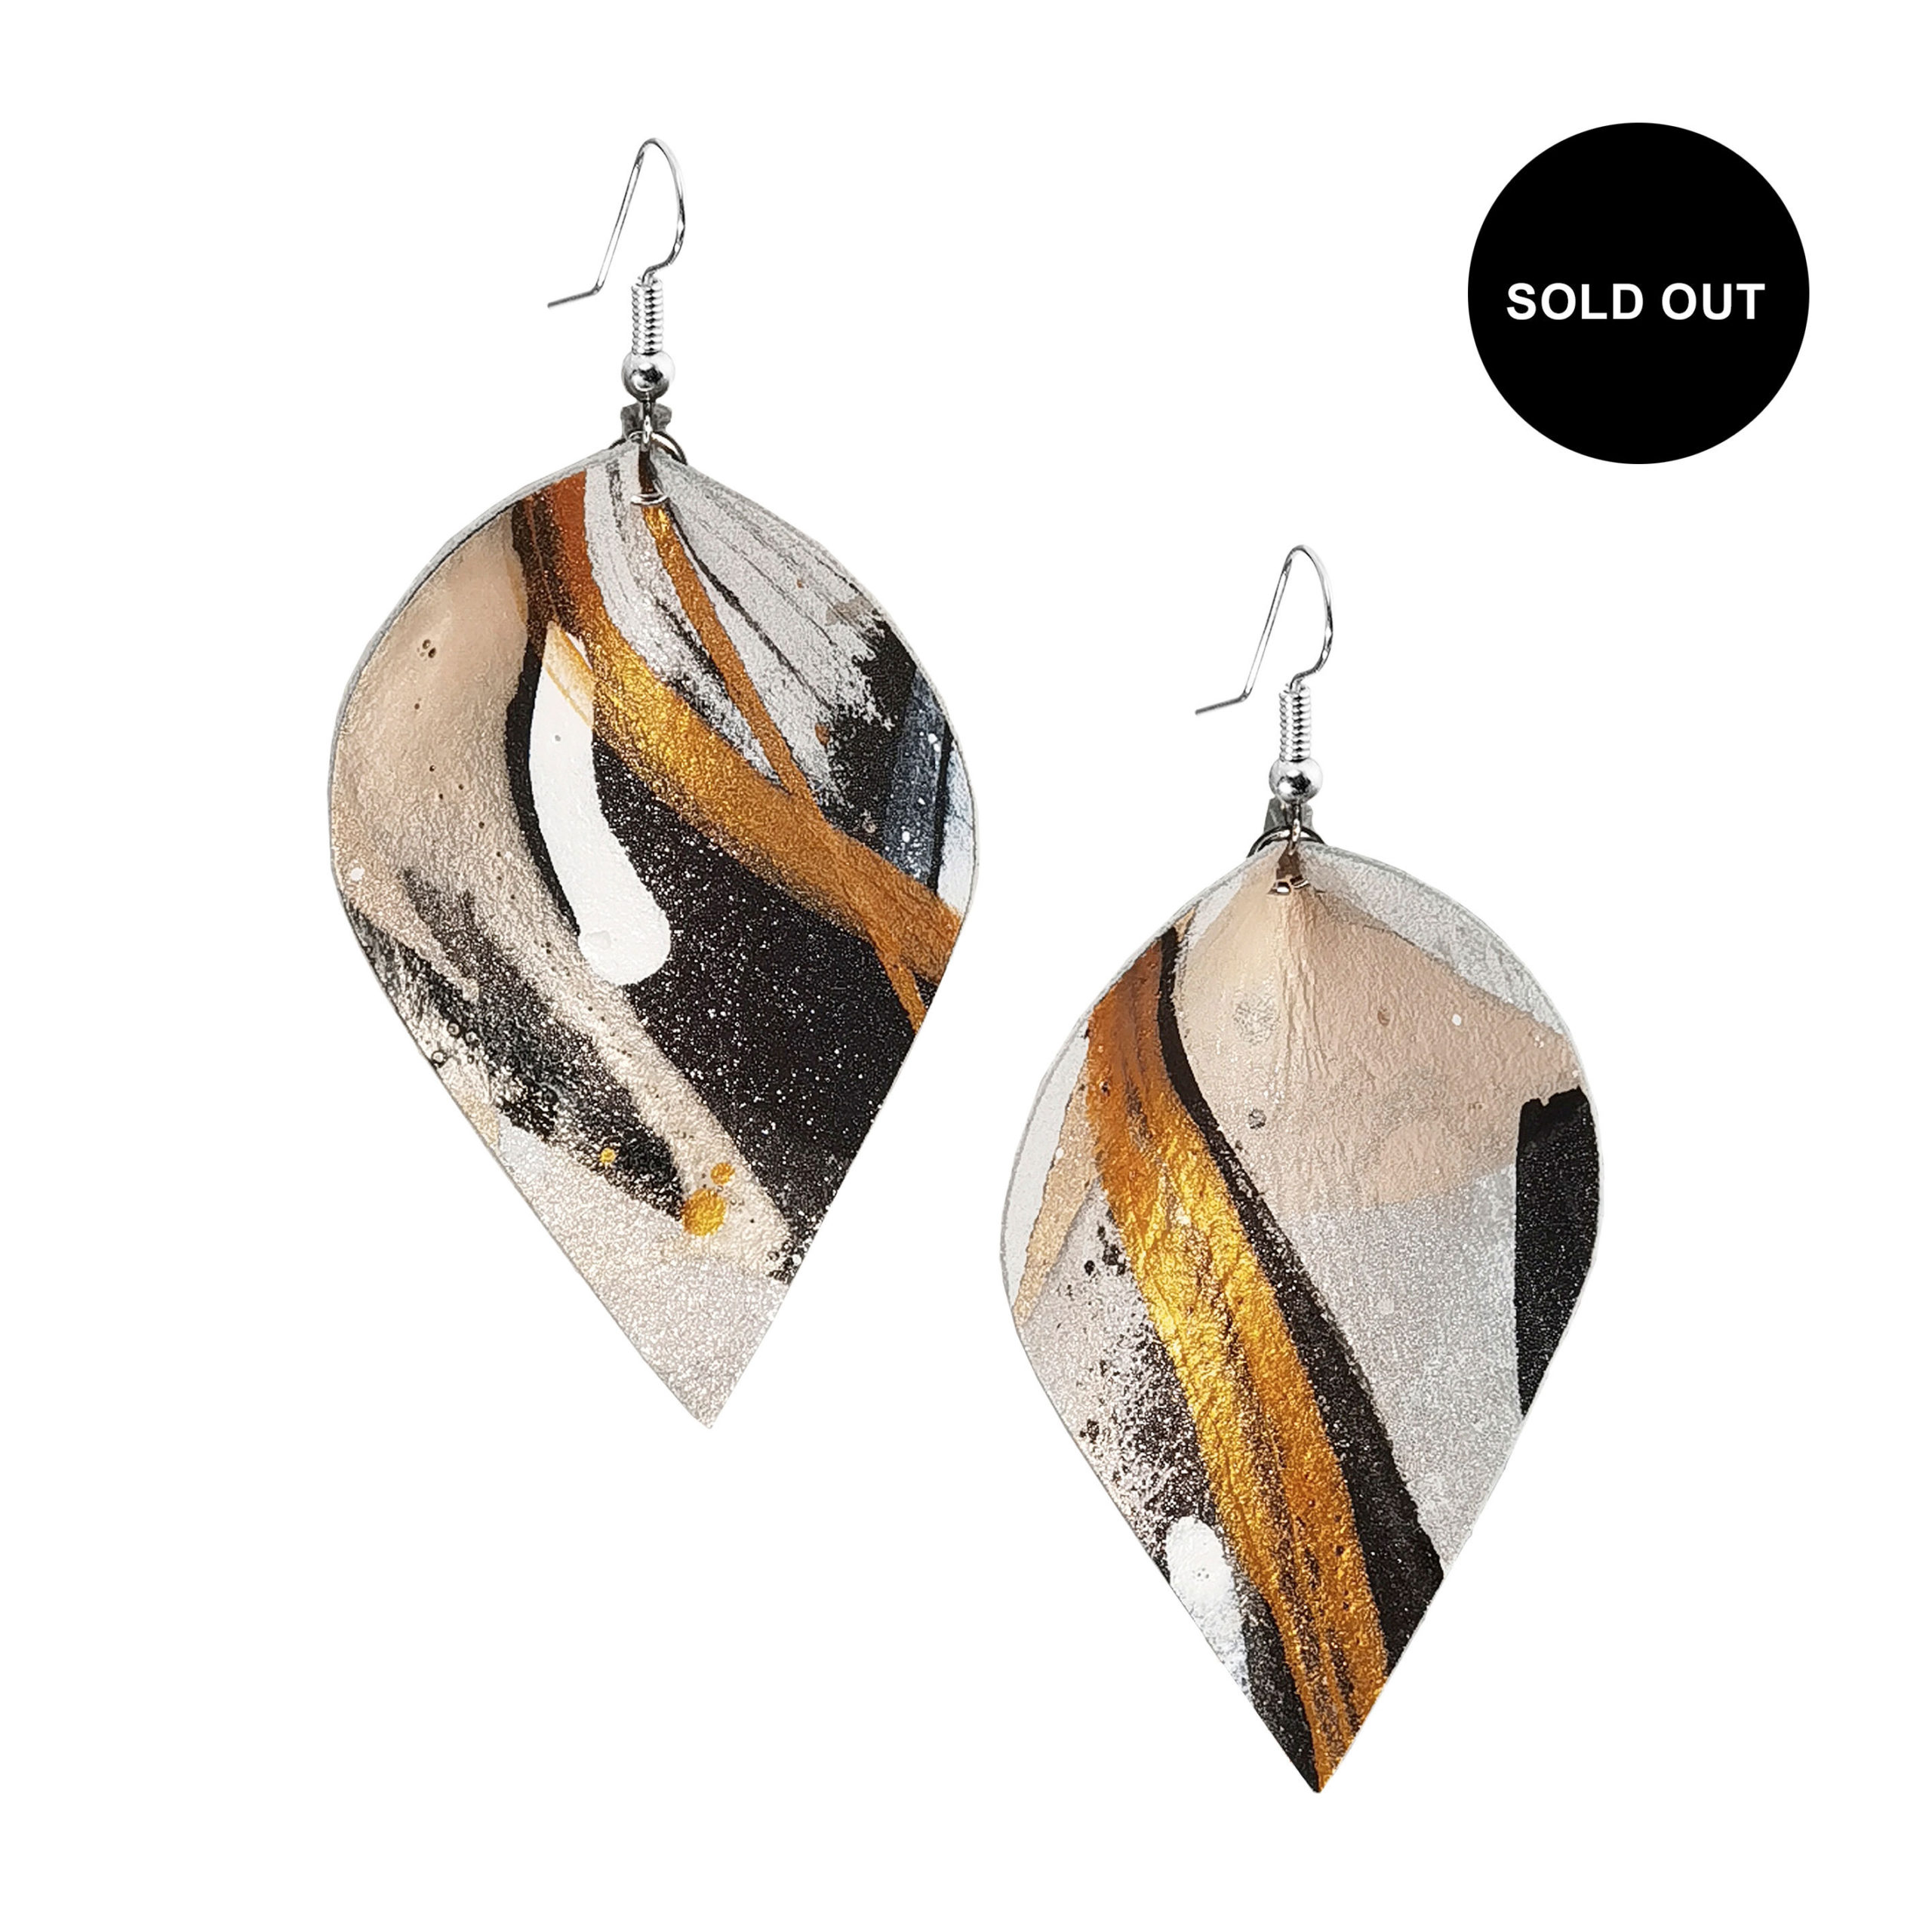 Viaminnet x Lotta Sirén Leather Earrings SOLD OUT No. 302 Abstract Glamour